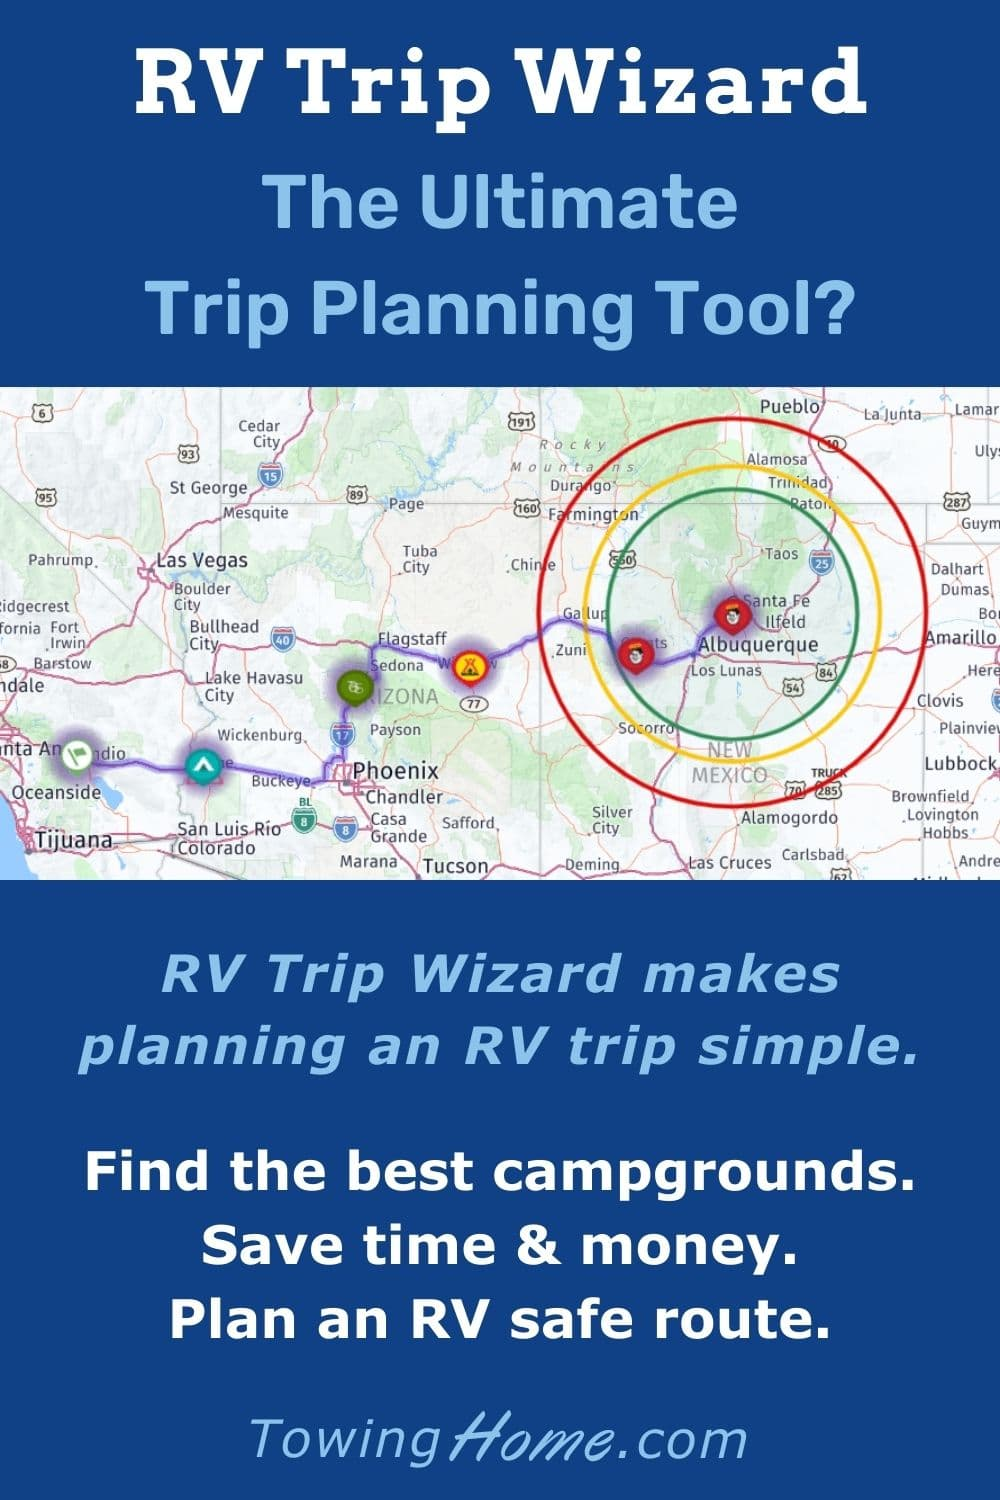 RV Trip Wizard Review (The Ultimate Trip Planning Tool!)